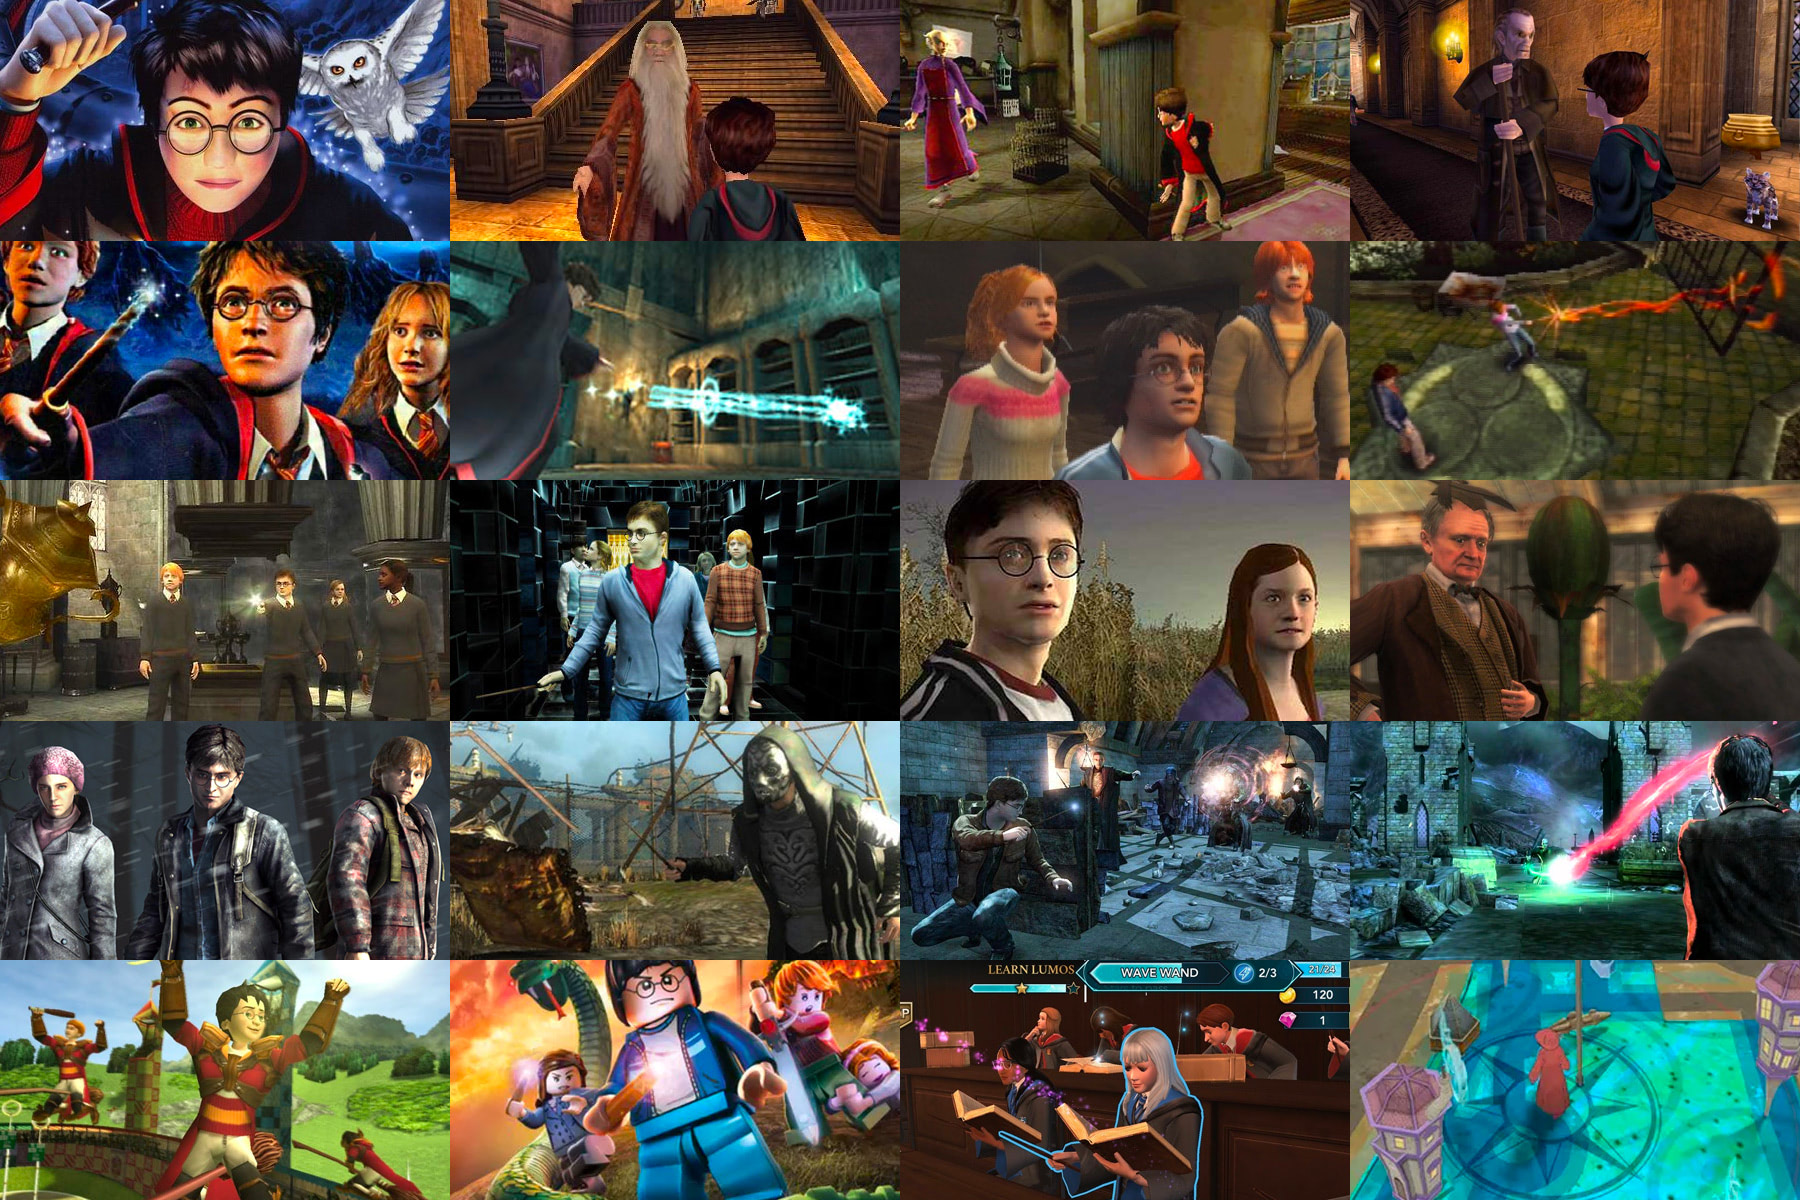 Collage of 'Harry Potter' video and mobile games